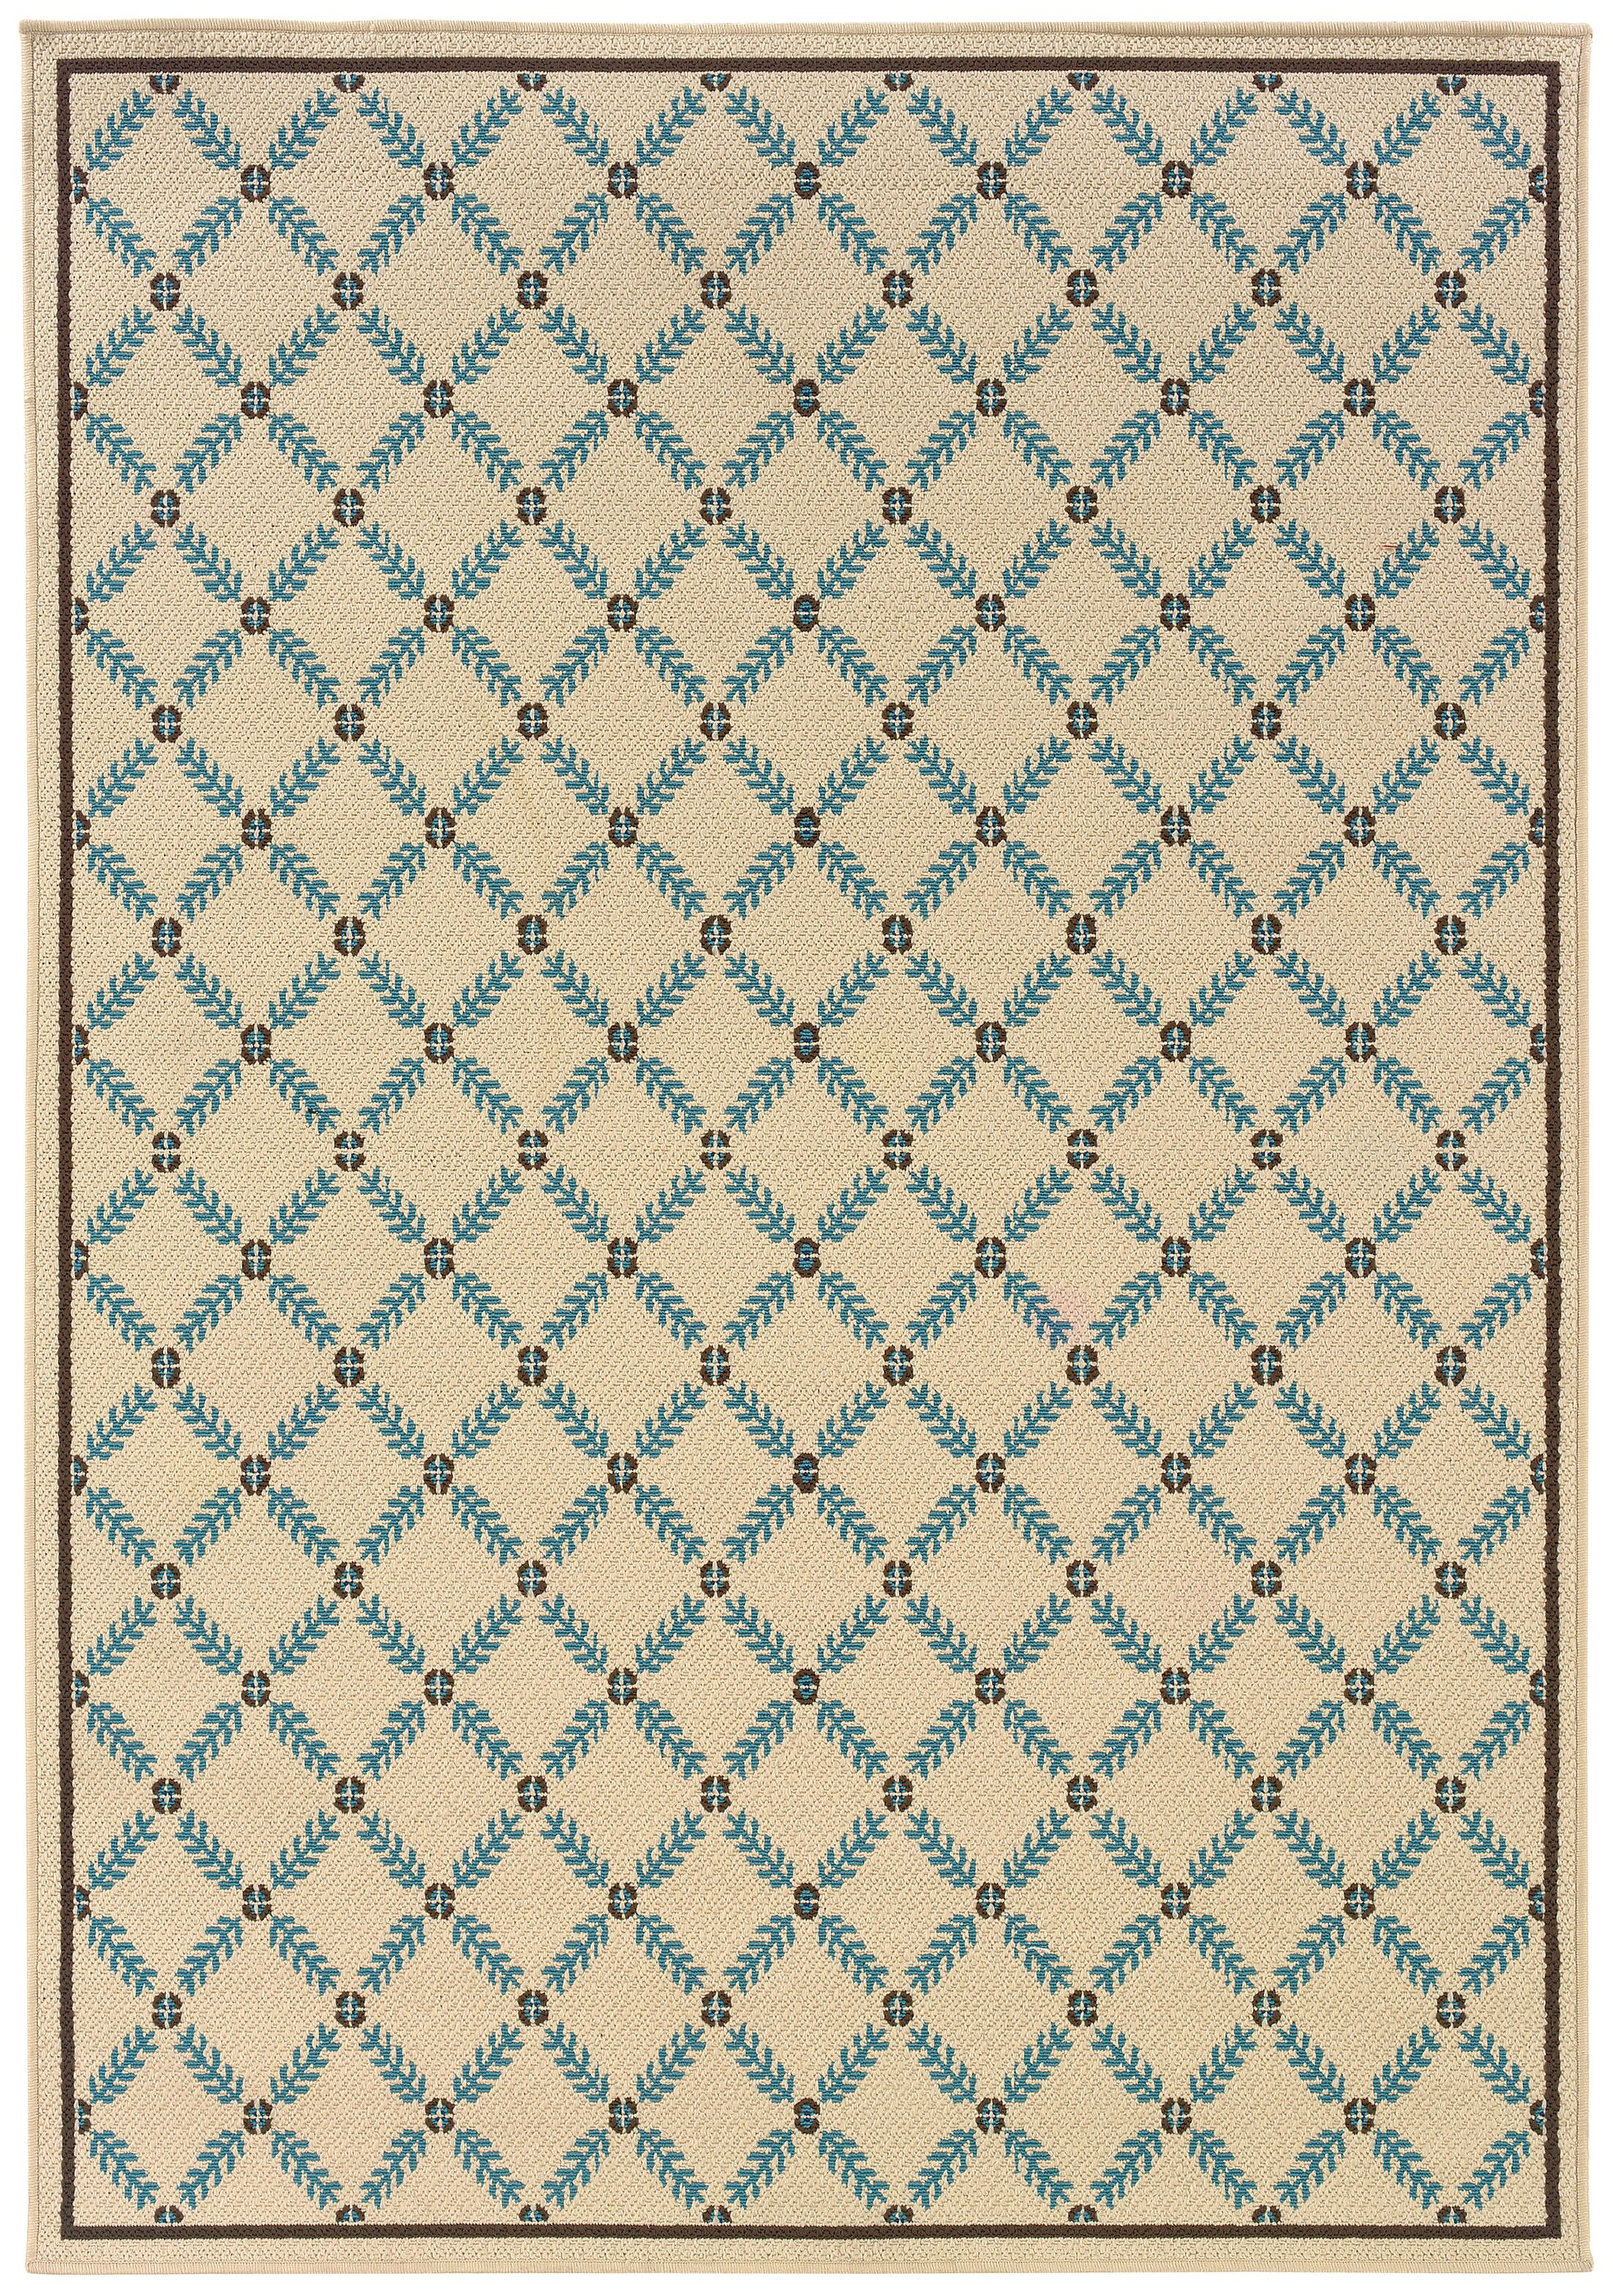 Newfield Ivory/Blue Indoor/Outdoor Area Rug Rug Size: Rectangle 7'10